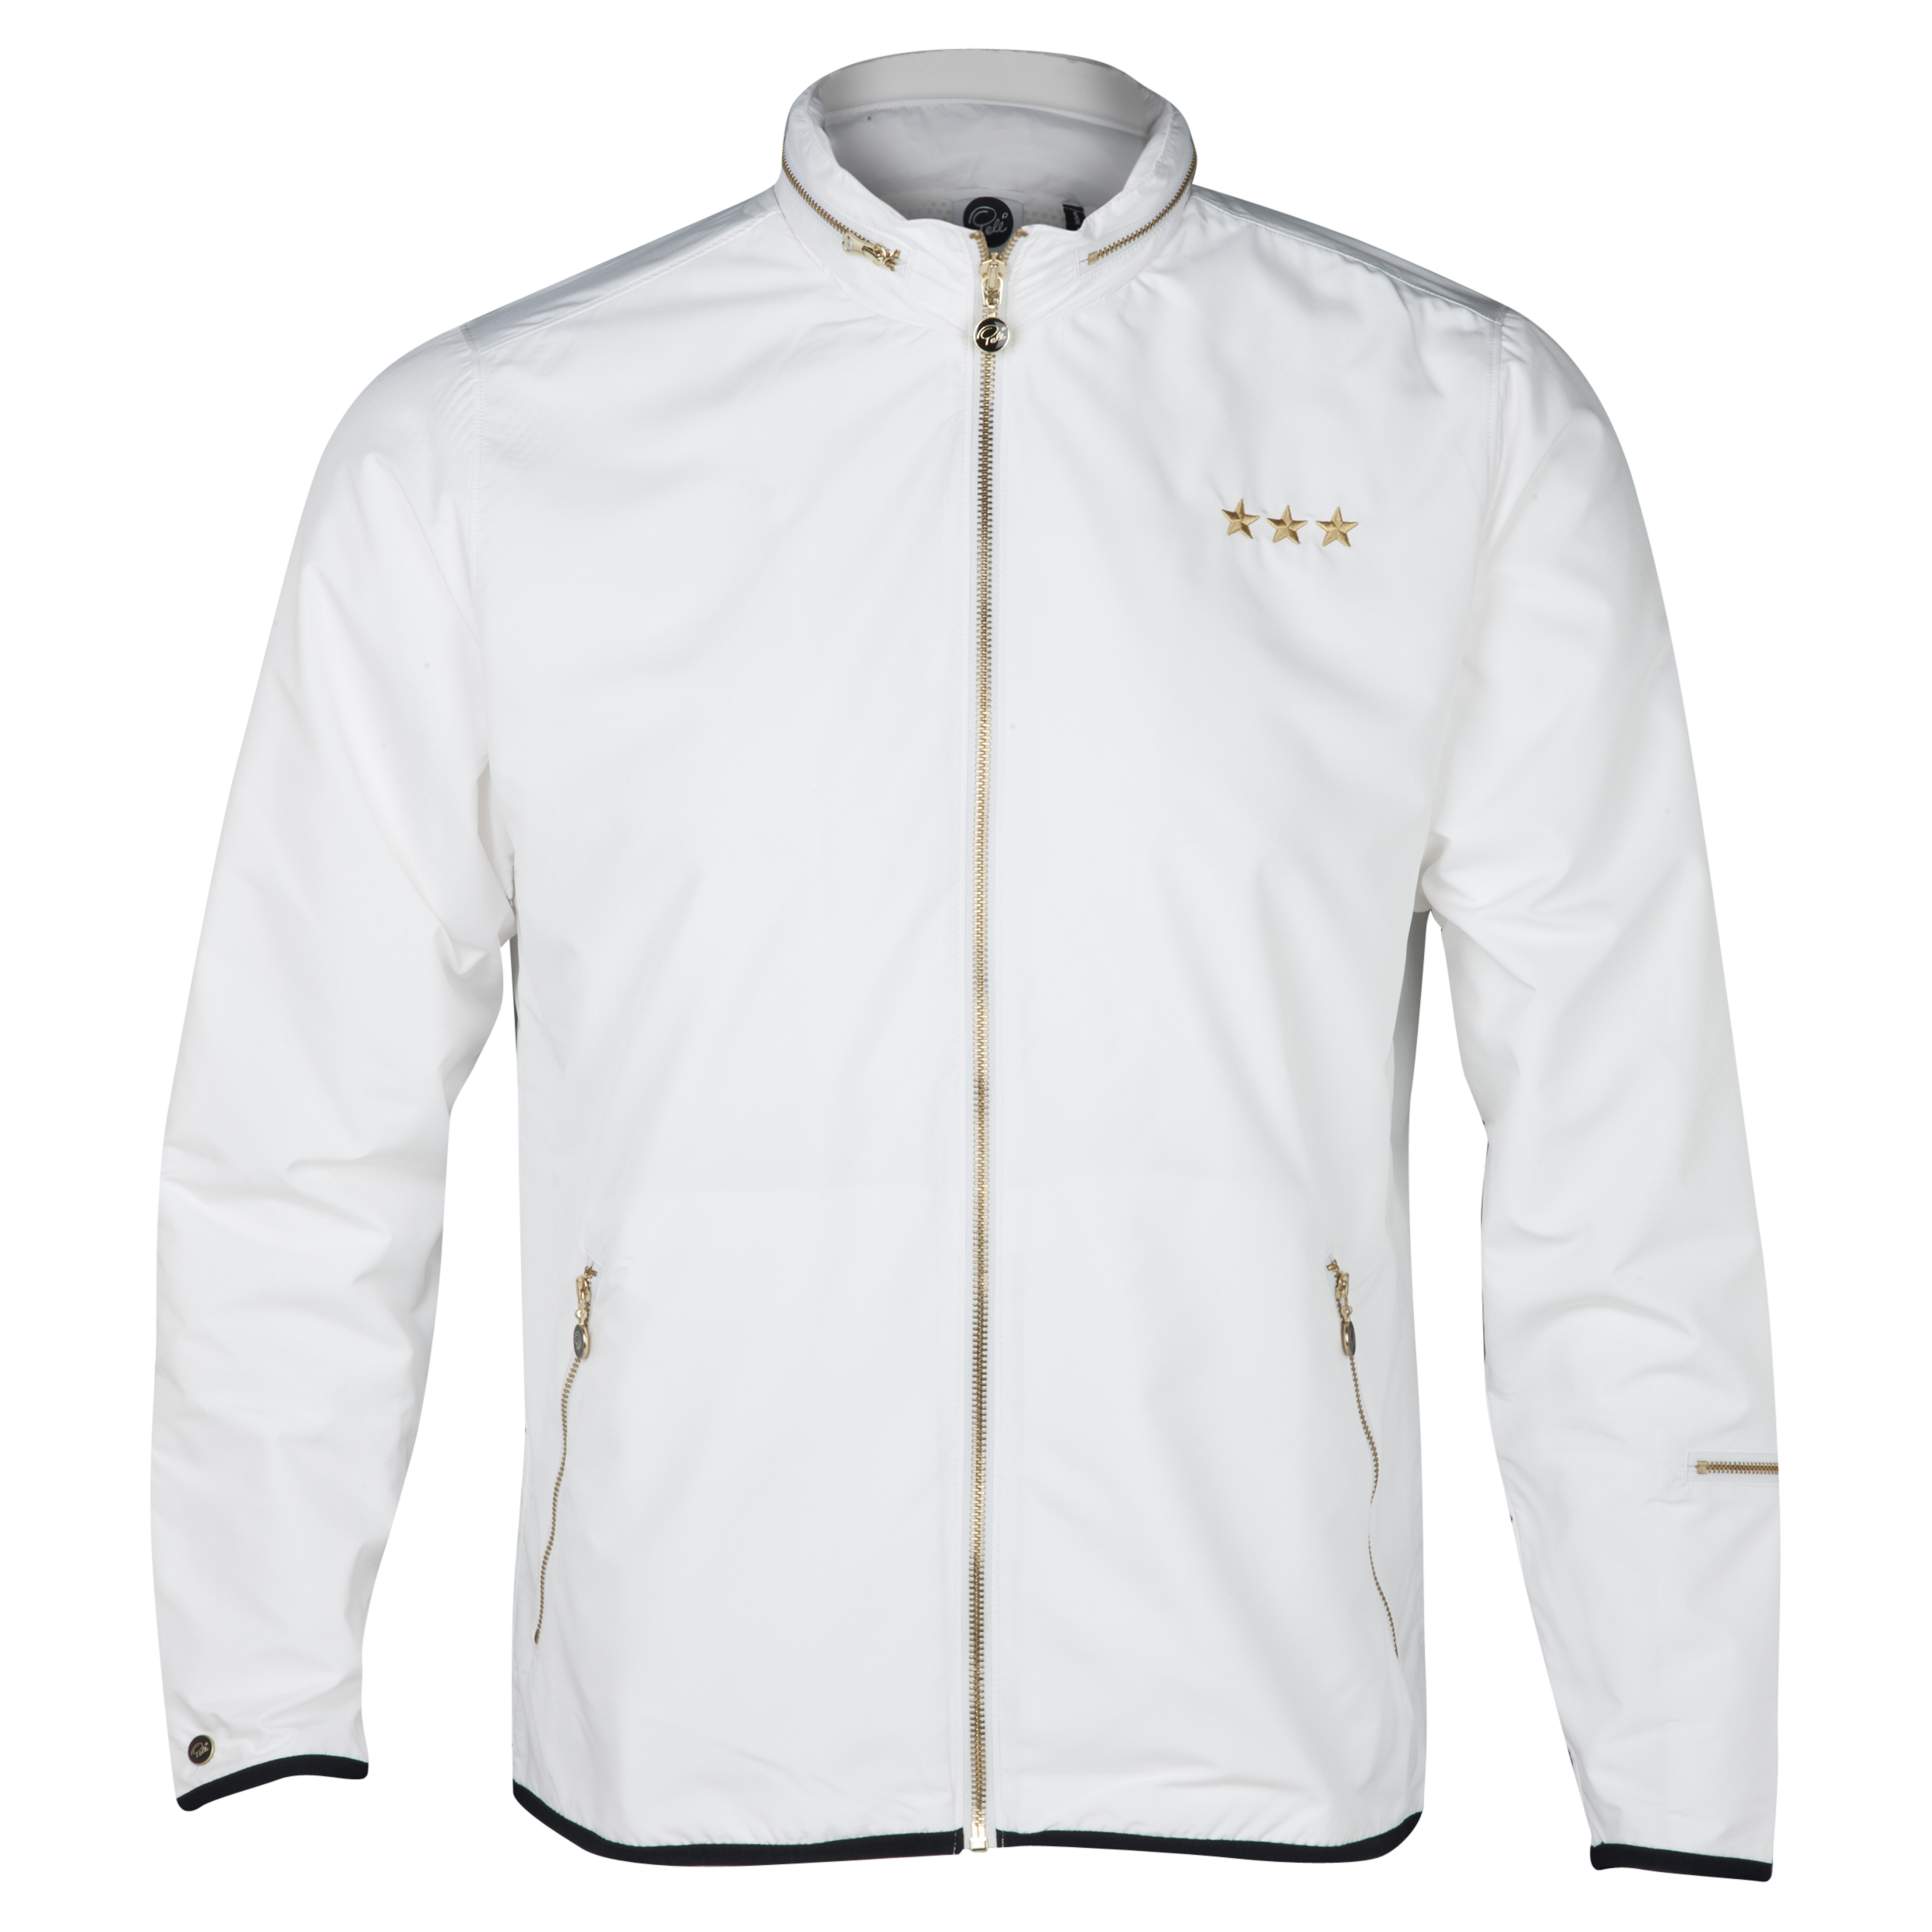 Pele Sports Gold Wind Jacket - Snow White